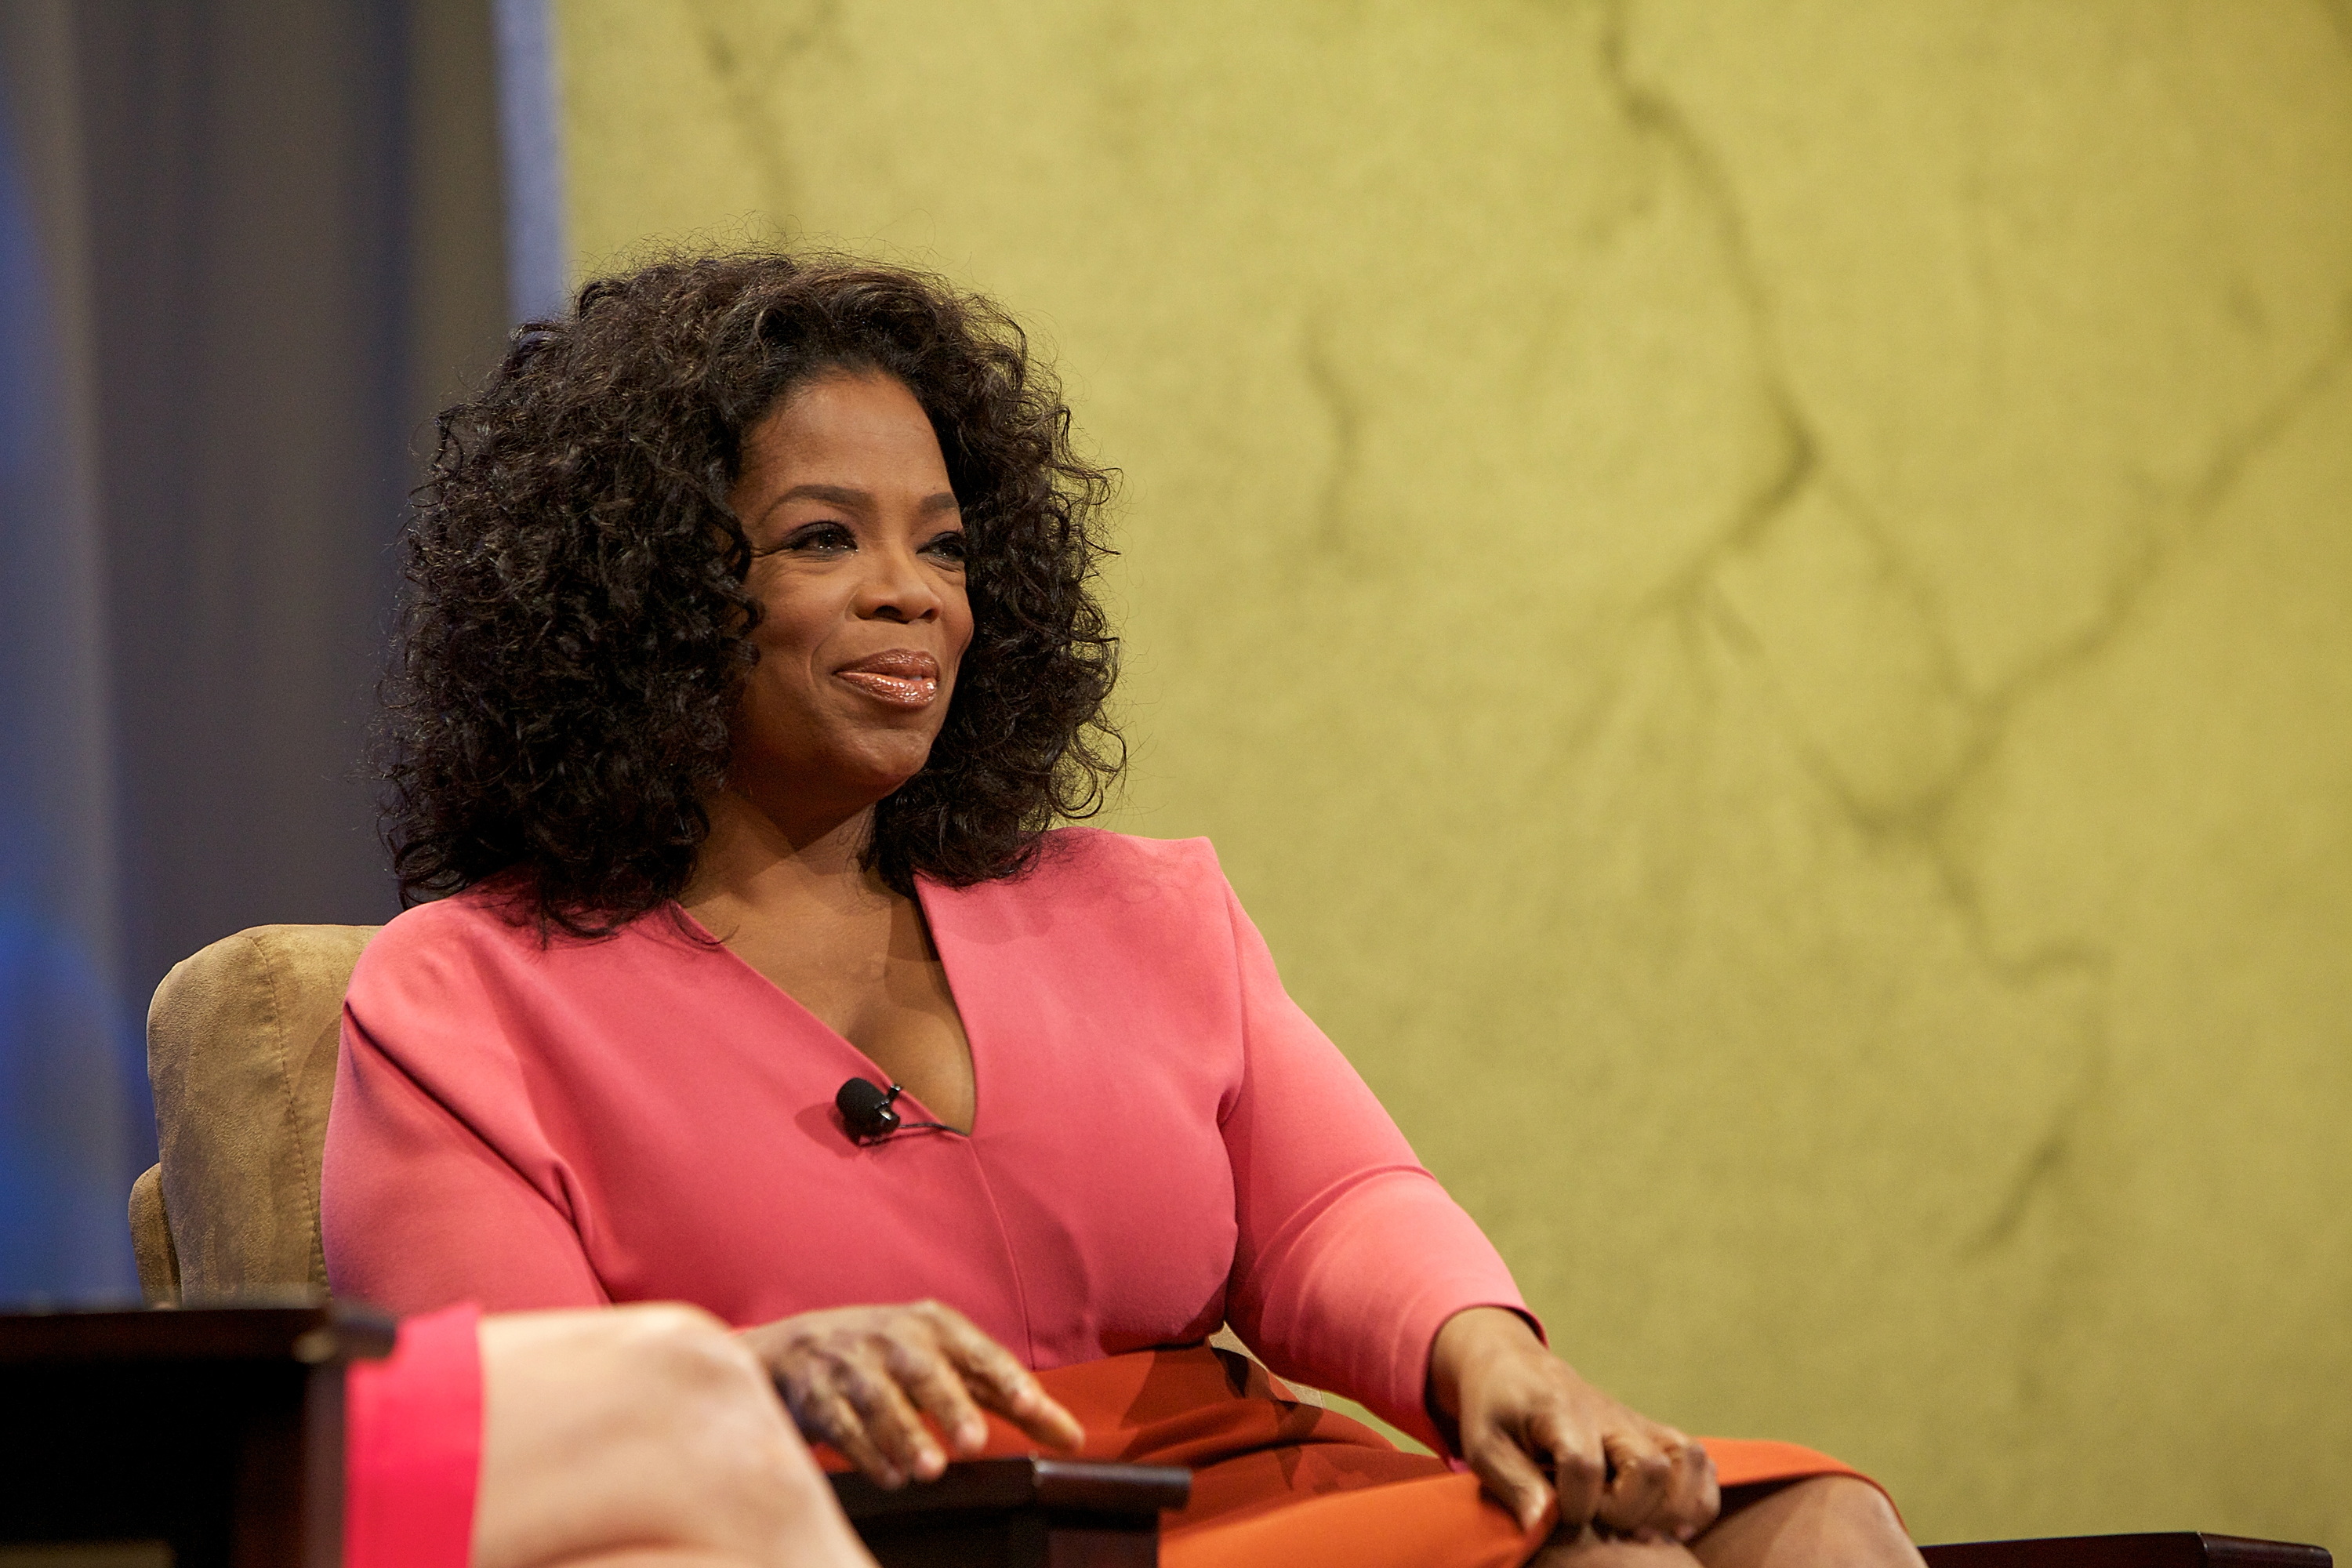 Oprah Winfrey: Media Mogul and Philanthropist